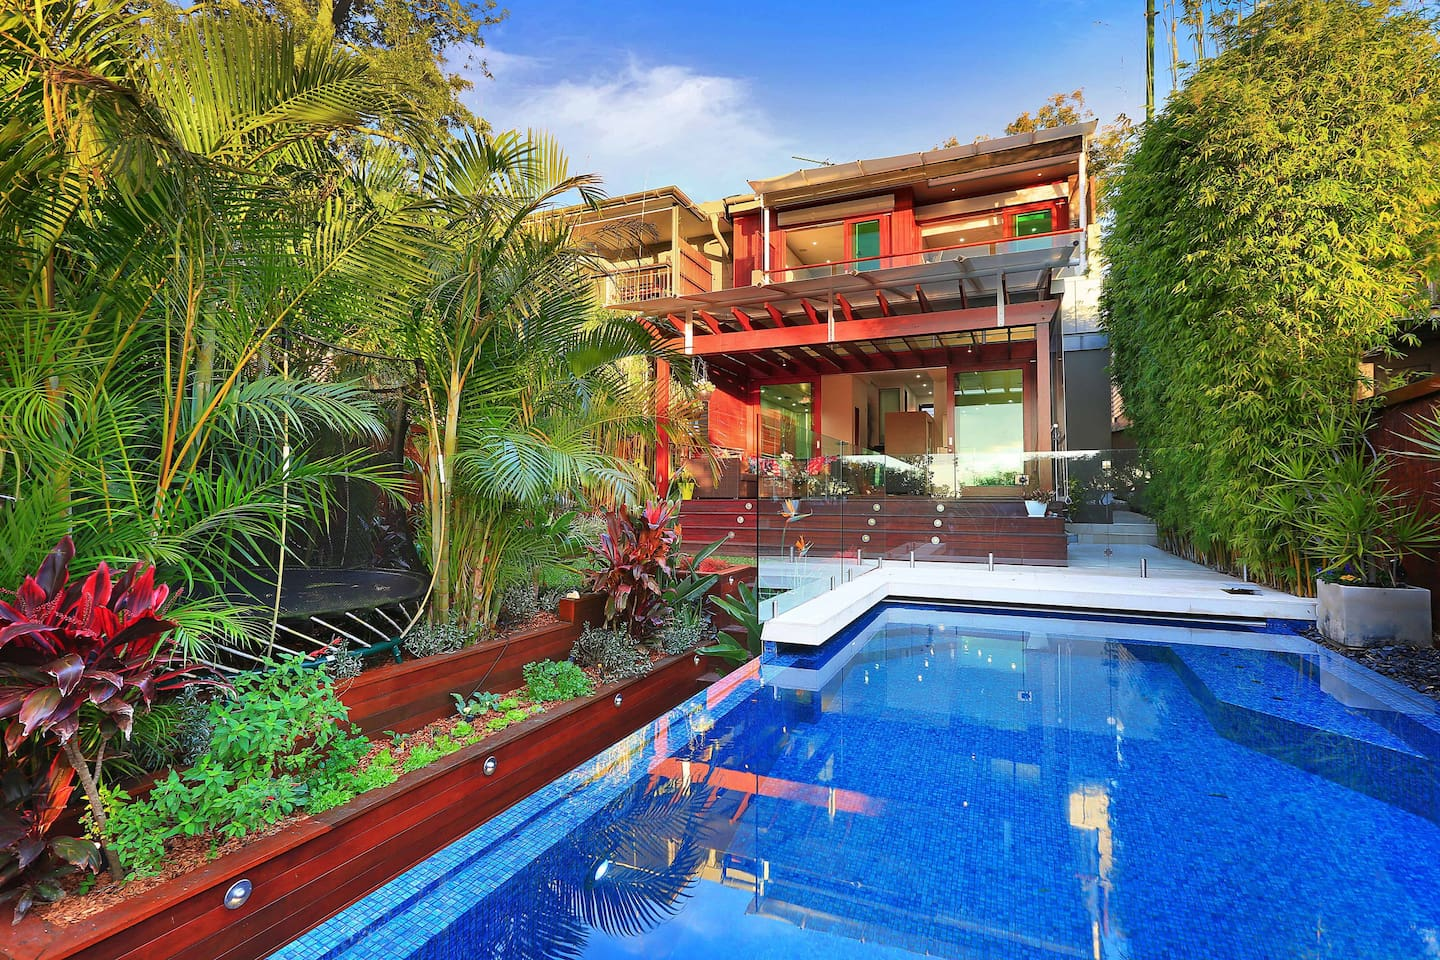 Back of house, Deck, Garden & Pool/Spa